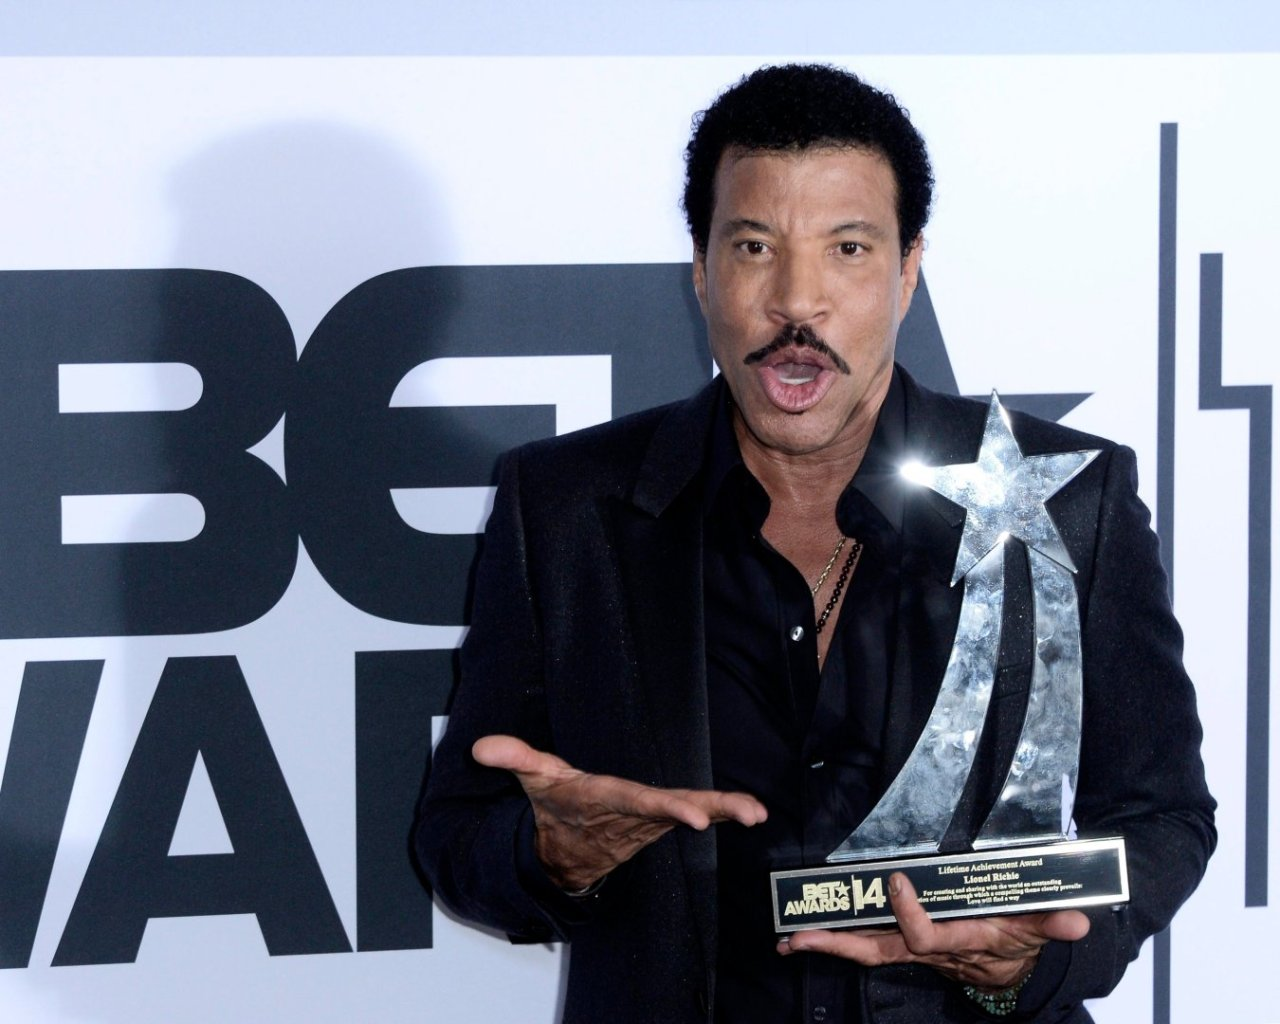 Lionel Richie, BET Awards 2014